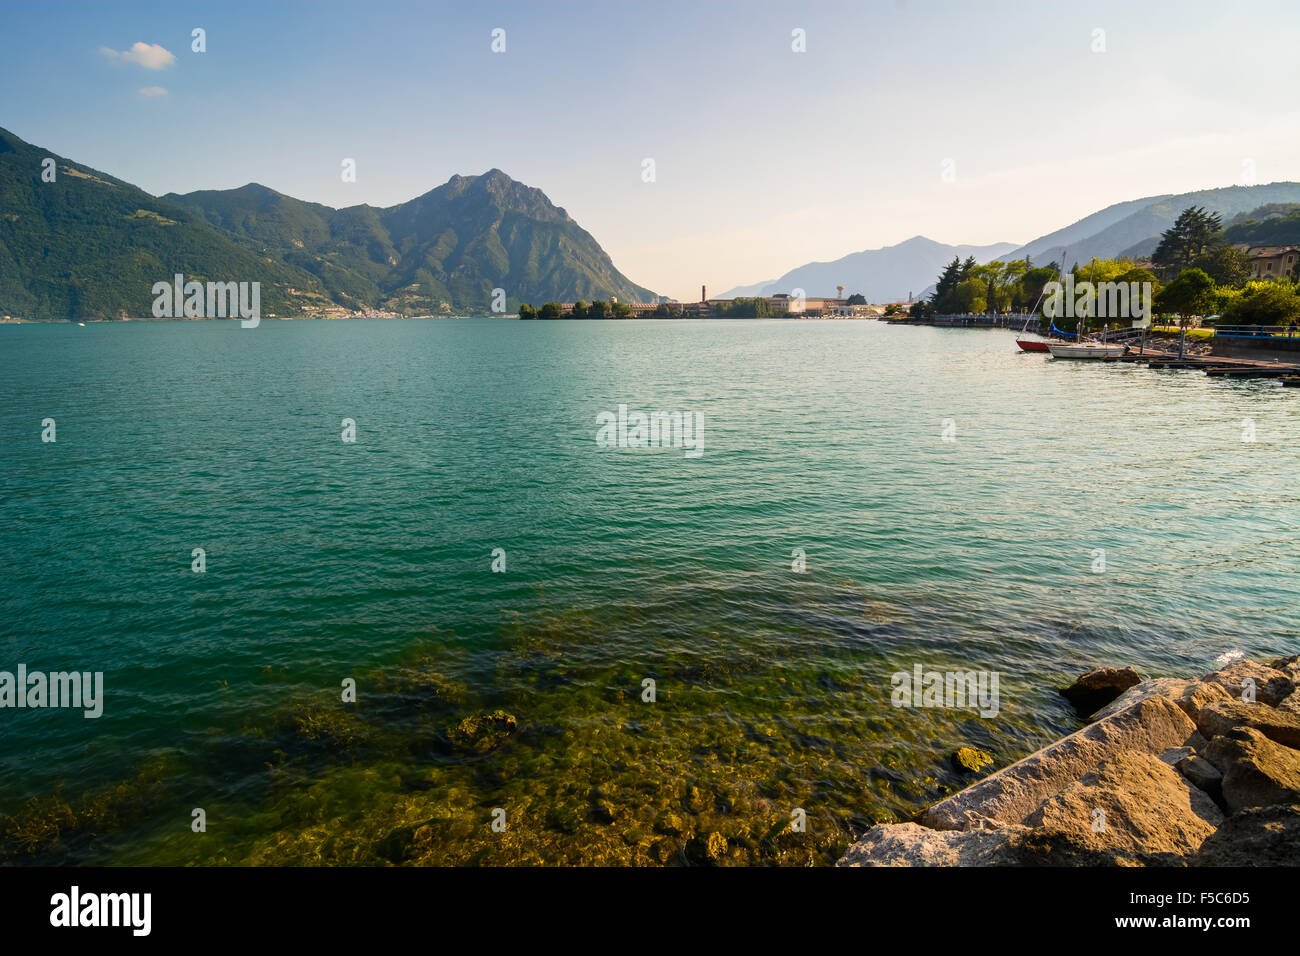 In the picture a view of Lake Iseo from the town of Lovere, Italy. - Stock Image